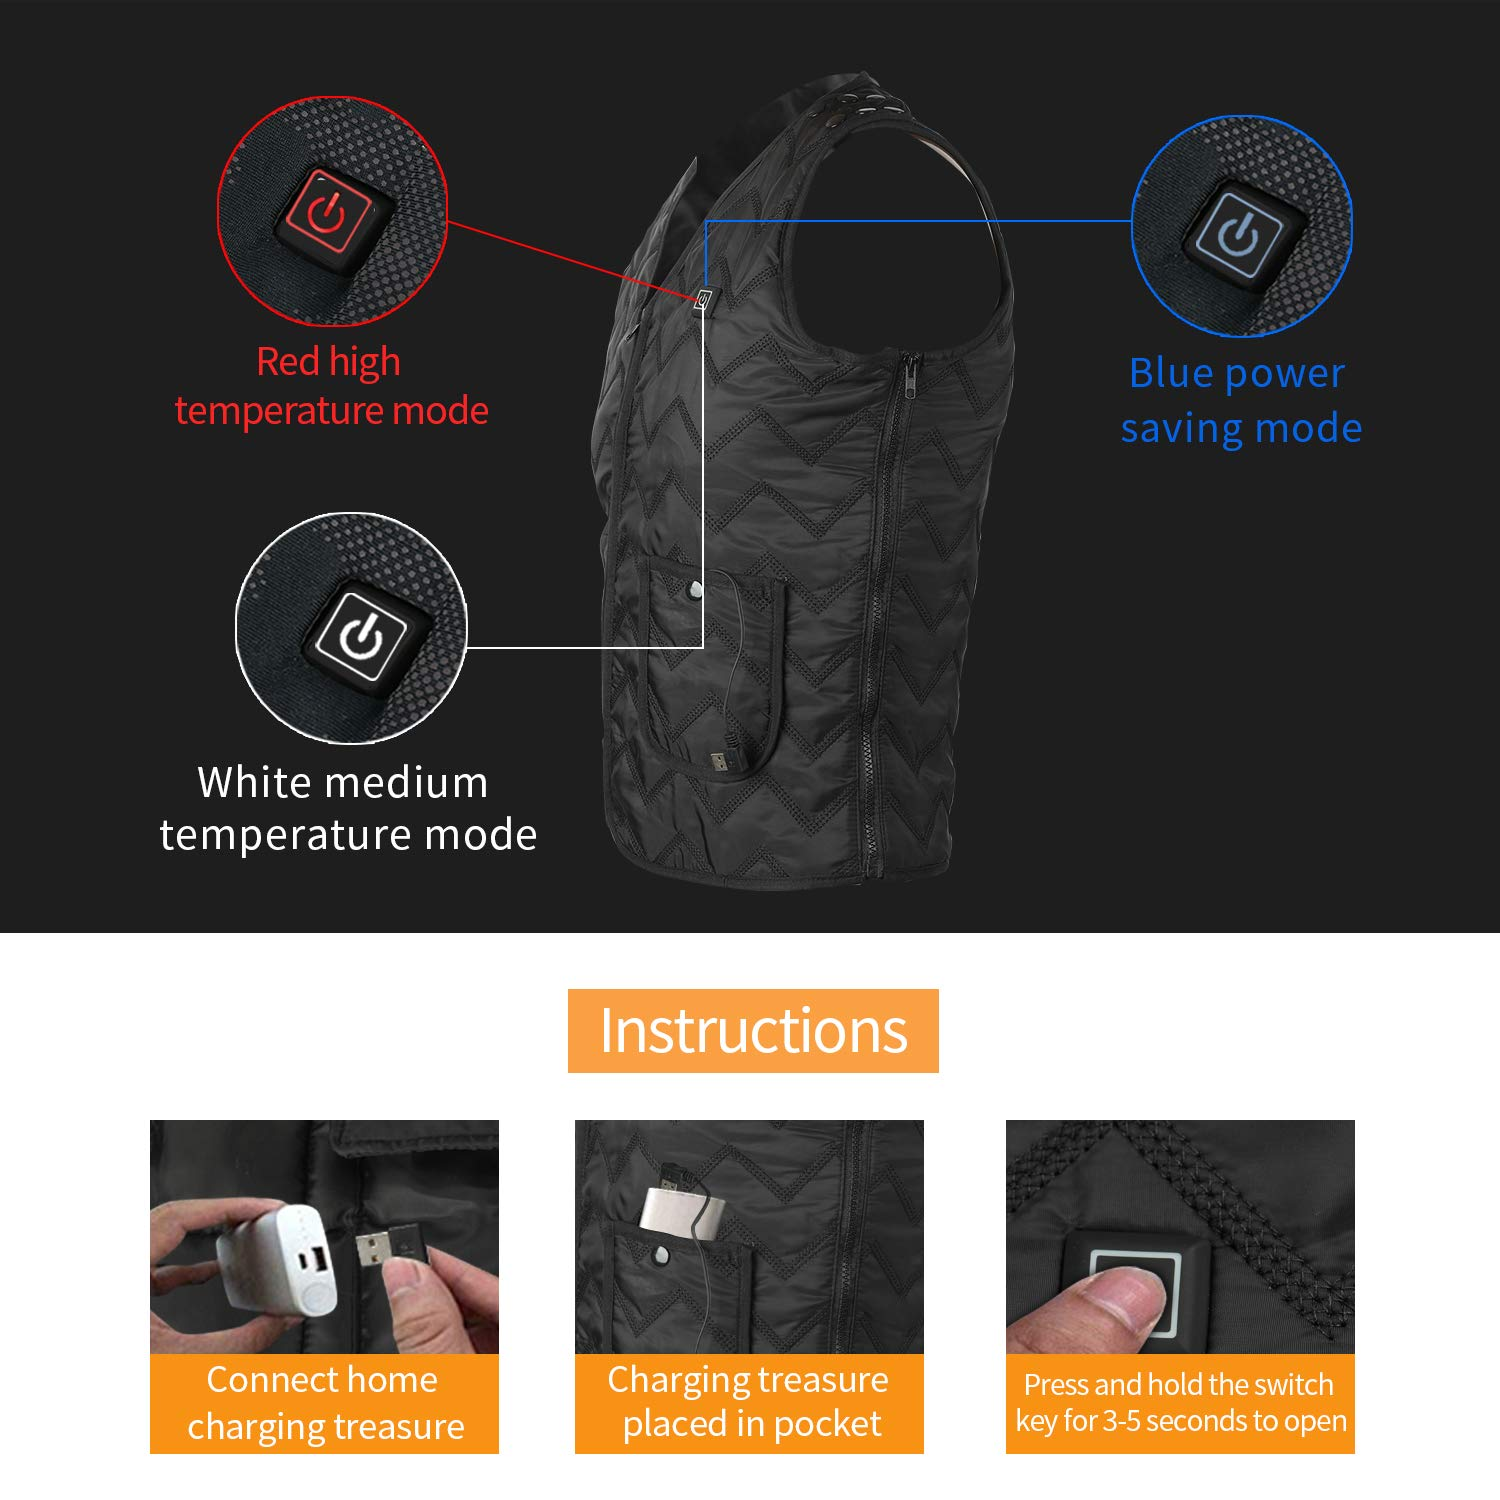 Heating Electric Vest USB Charging Heated Vest Cold-Proof Heating Clothes Washable Four Sizes Adjustment No Battery Pack Included Black by YZFDBSX (Image #4)